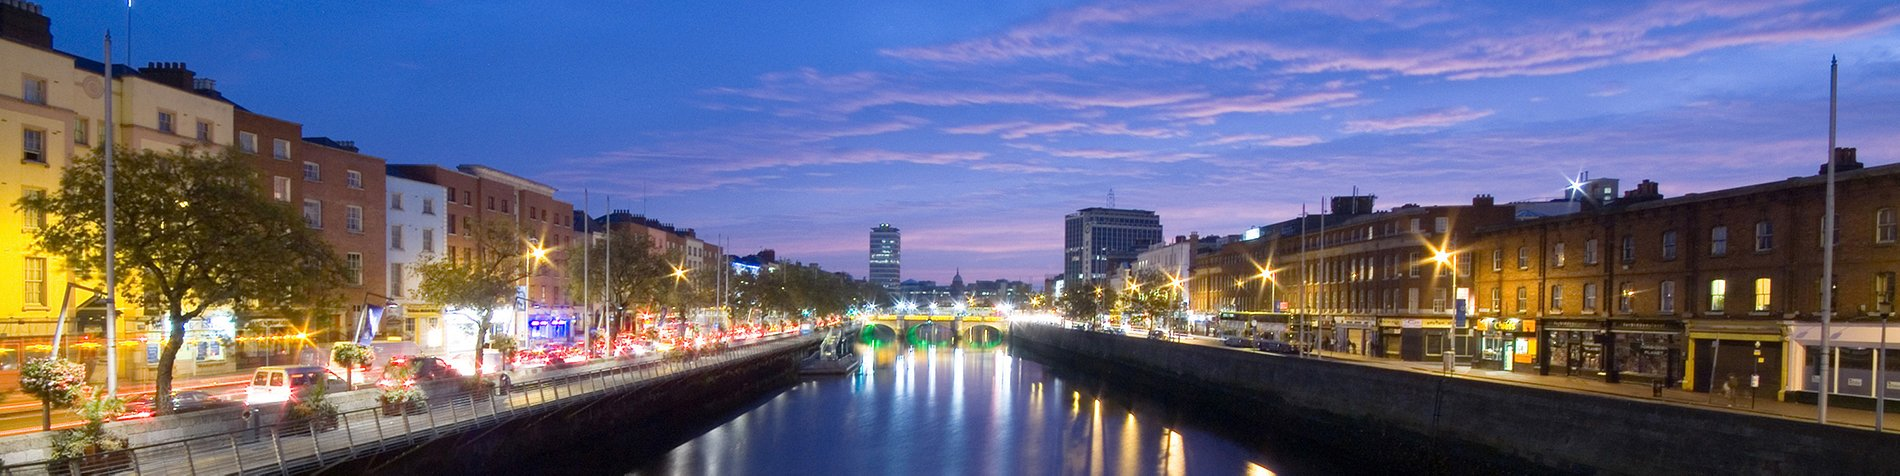 Dublin by Night - 10 Best Things to Do After Dark not Involving Alcohol